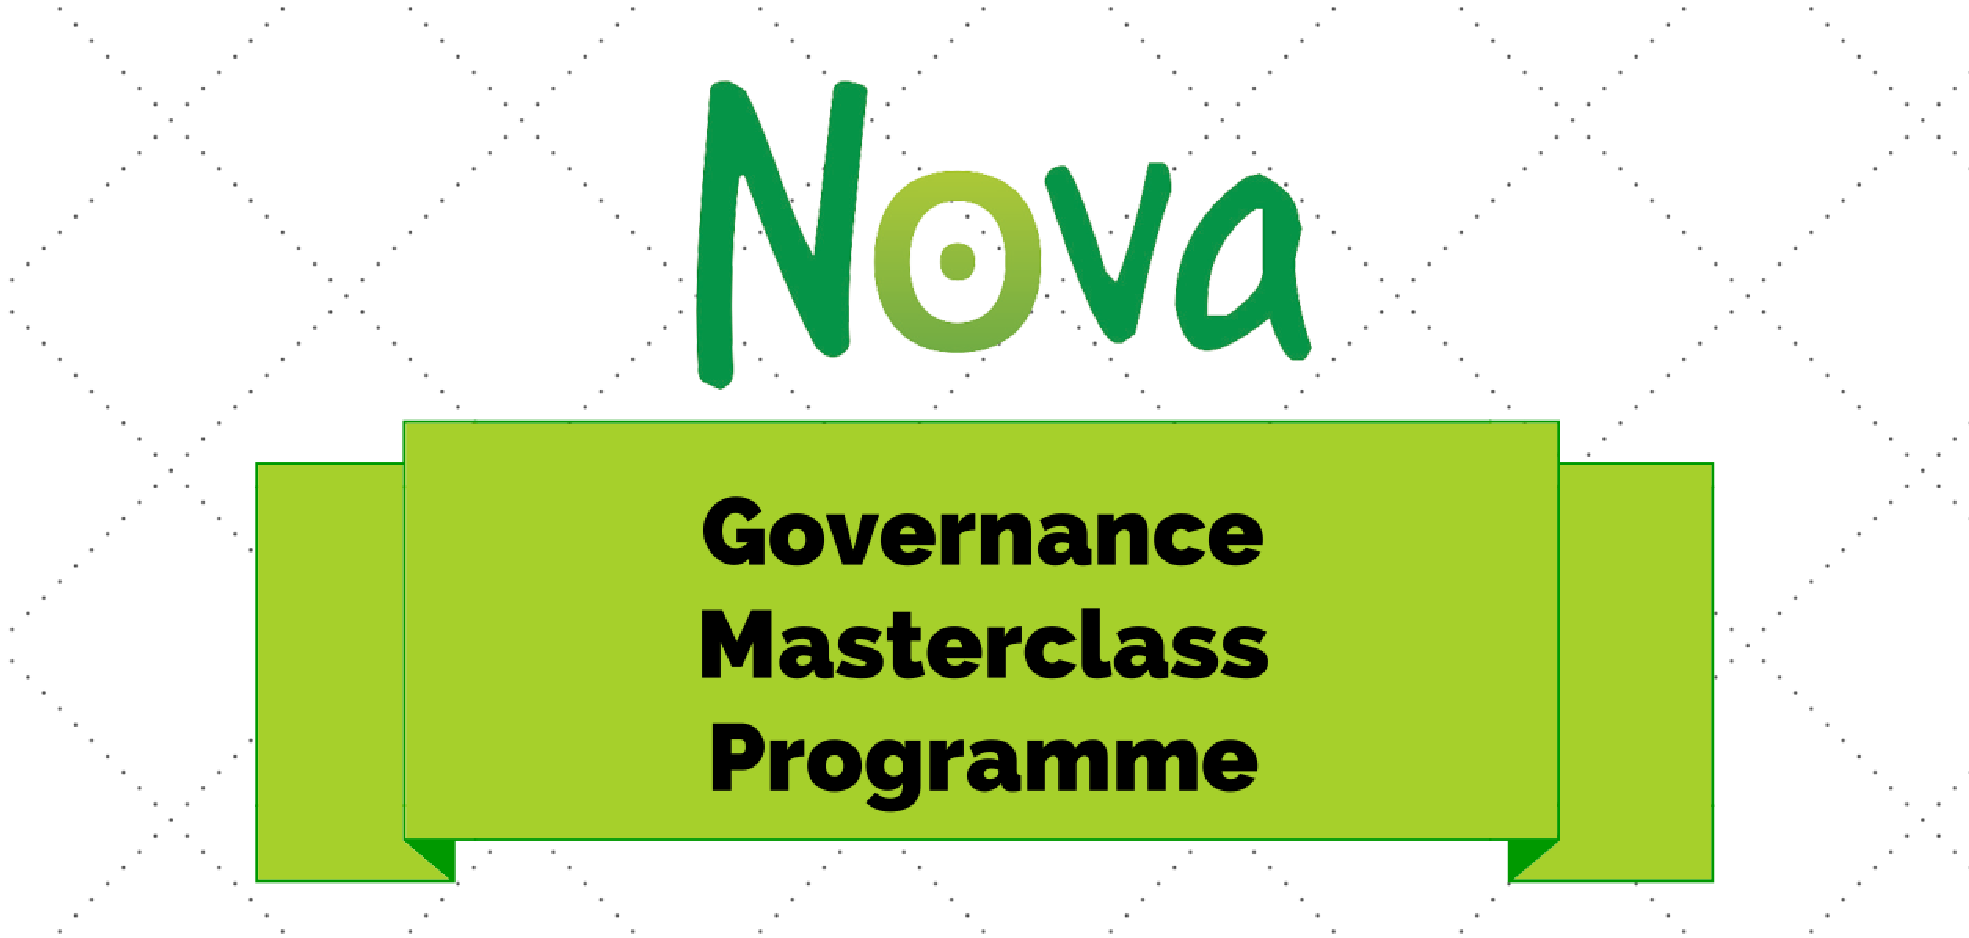 Governance Masterclass - Financial Responsibilities